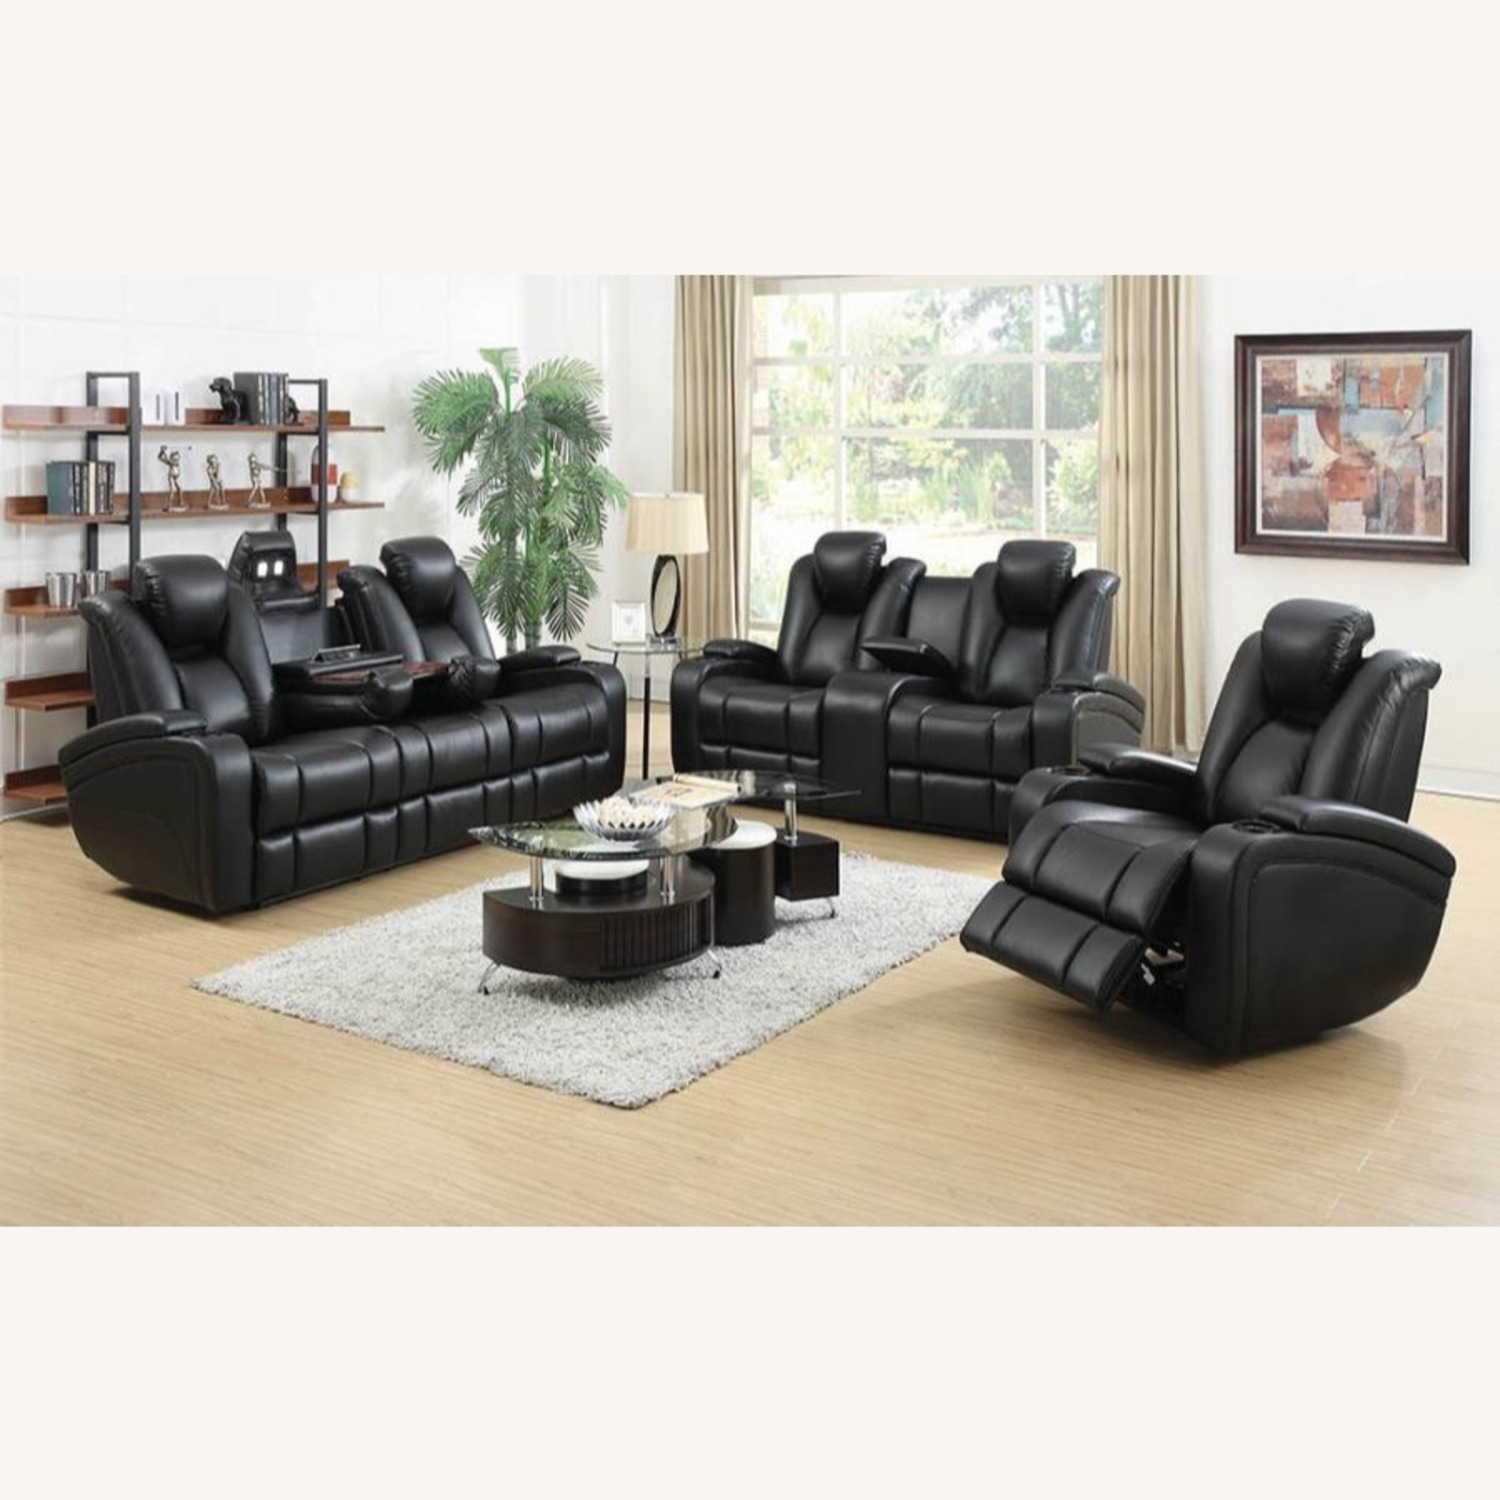 Power2 Sofa In Black Breathable Leather  - image-9